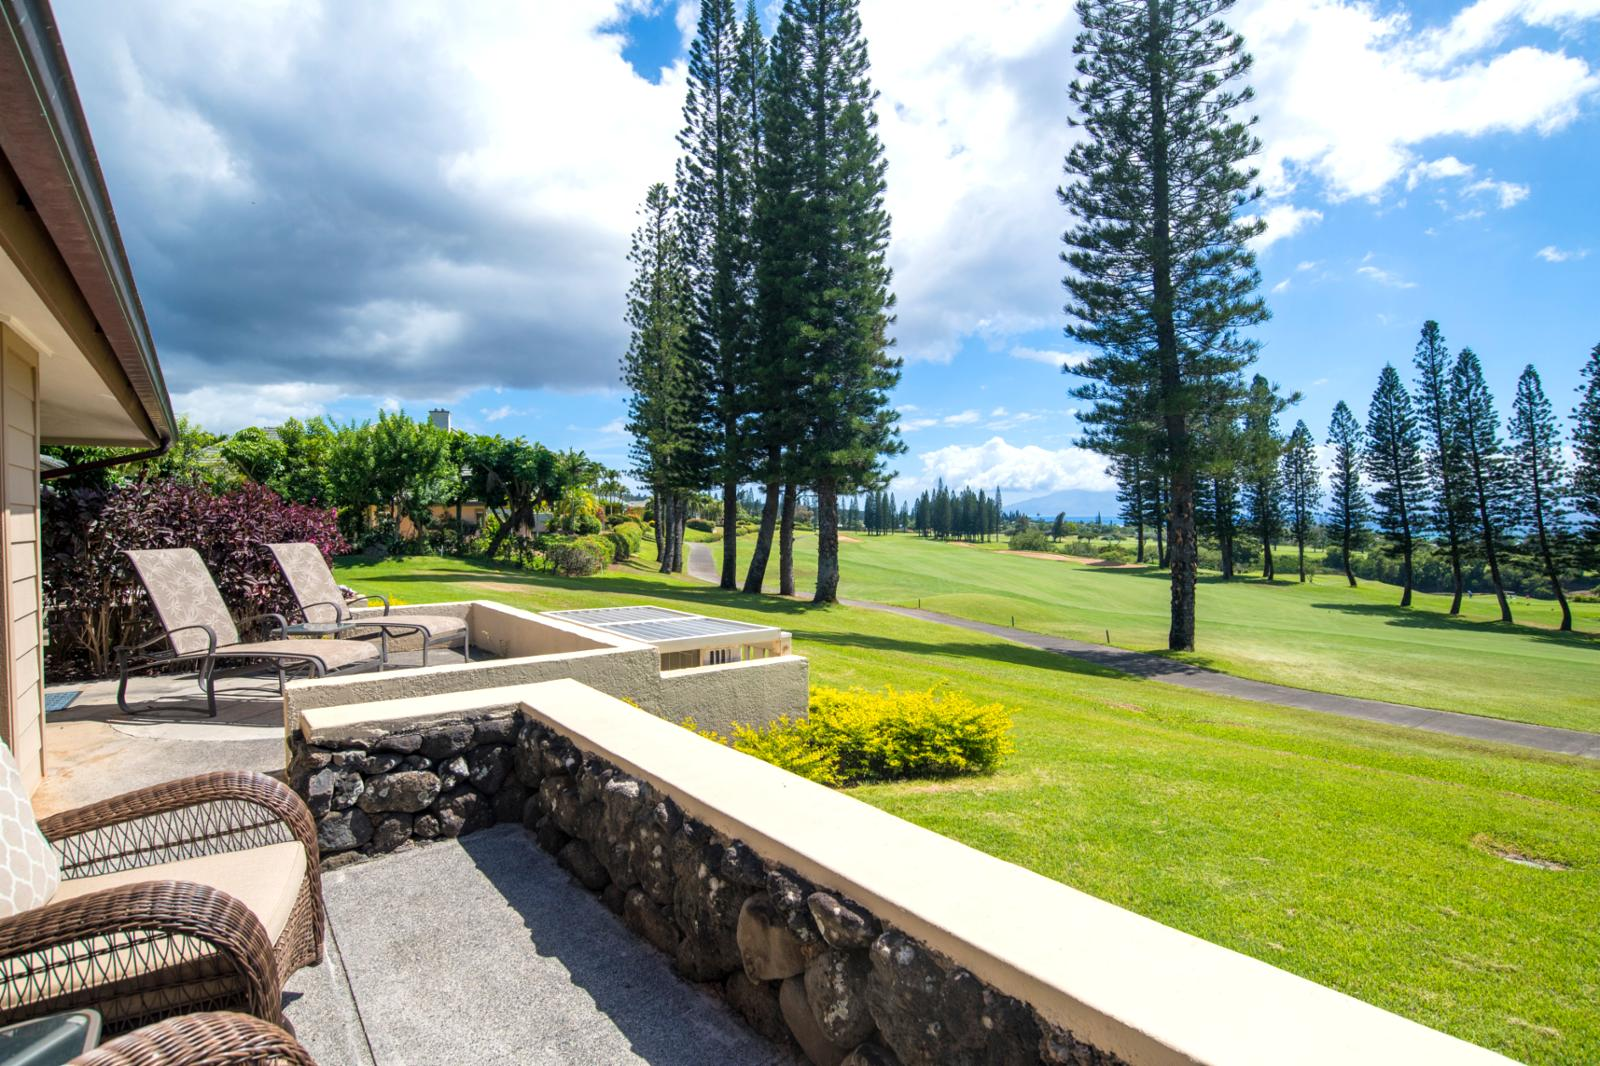 Jaw dropping views from this amazing rare location located right on the fairways!